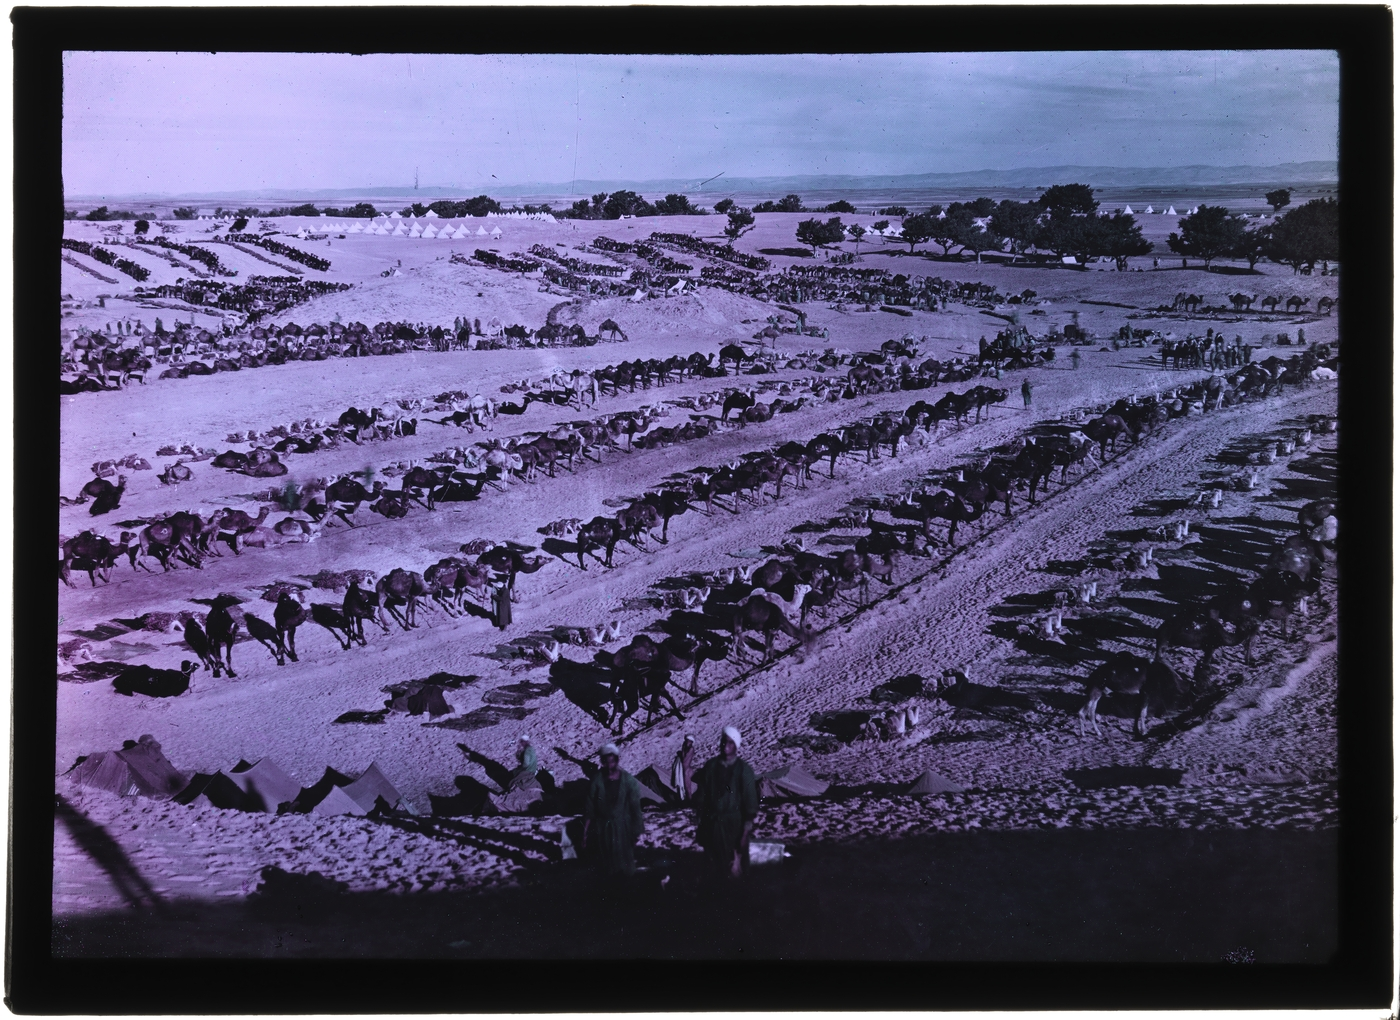 Camel lines of the Egyptian Camel Corps at Esdud. Palestine, February, 1918.